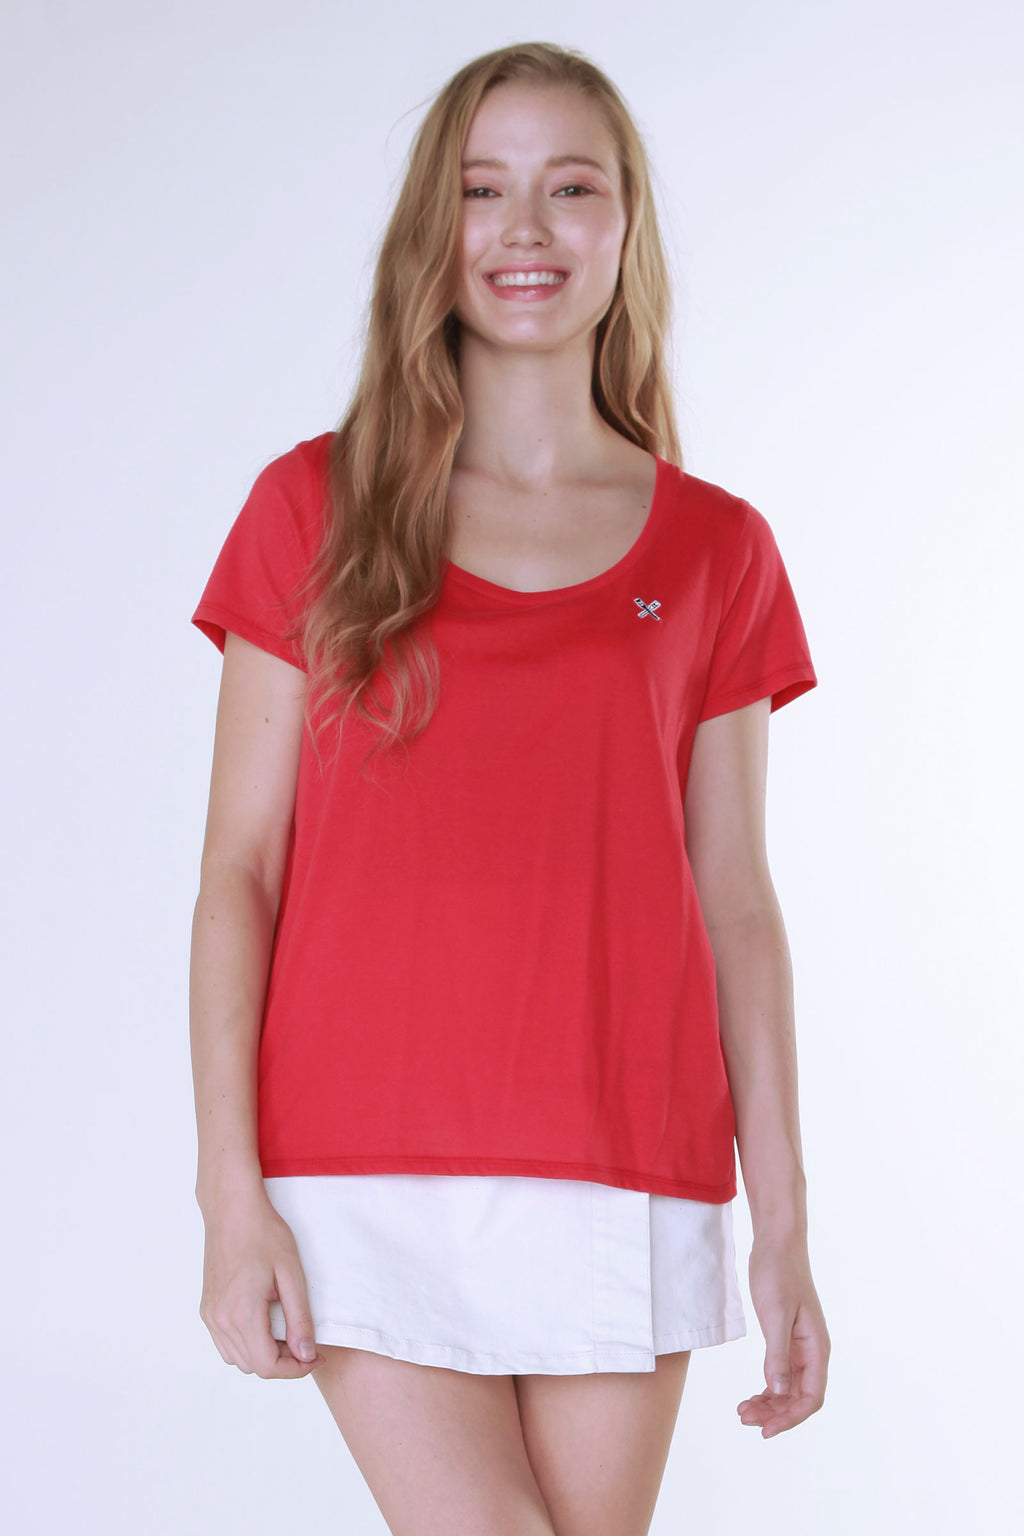 Single Jersey Tee With Scooped Neck